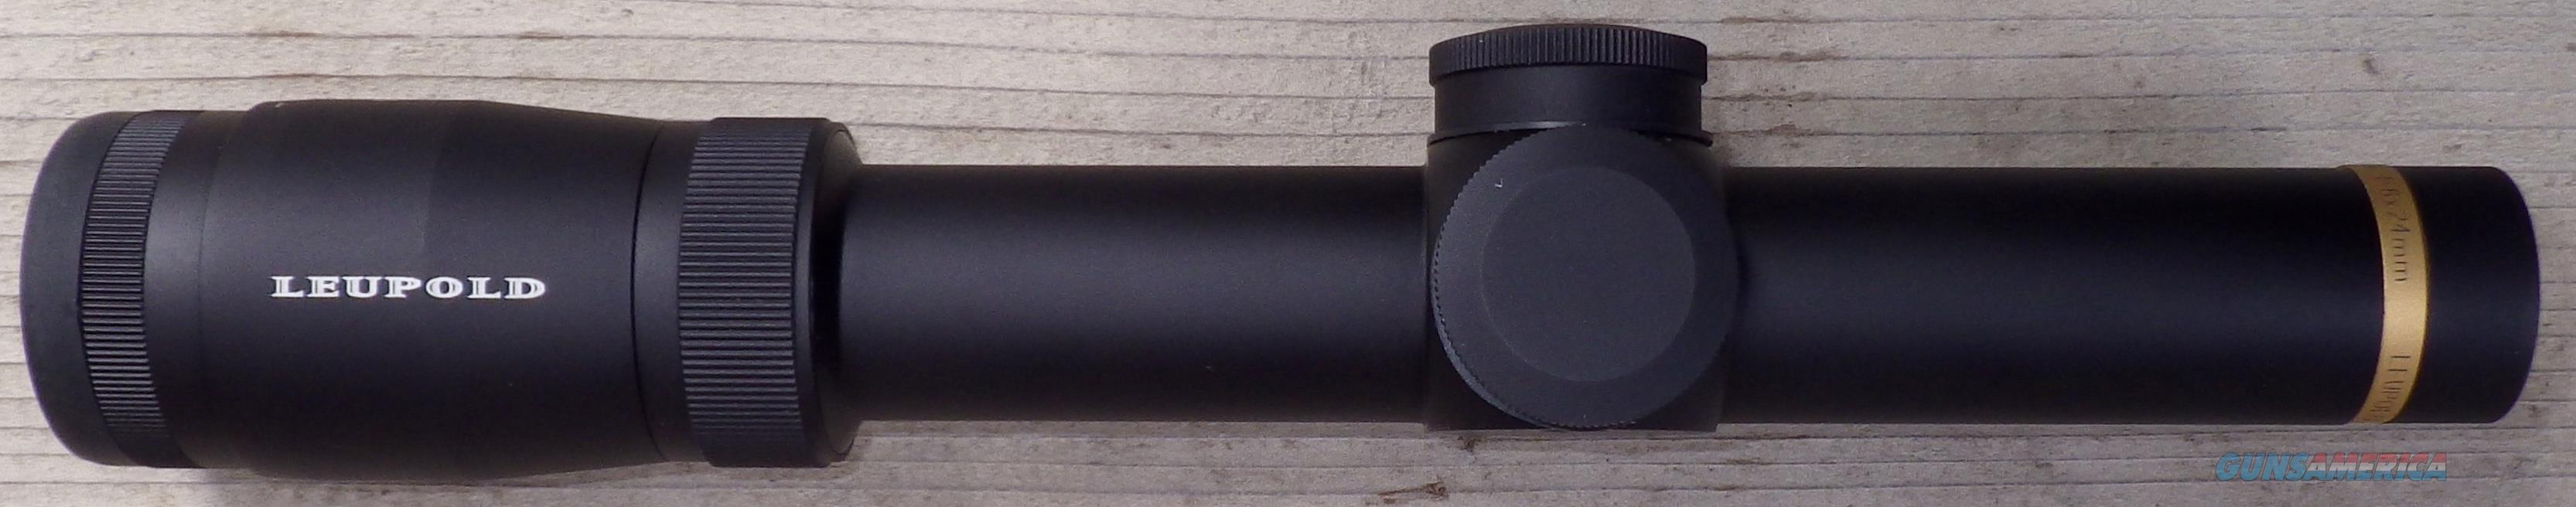 Leupold VX-6 1-6x24mm CDS FireDot Duplex, matte, item 112318  Non-Guns > Scopes/Mounts/Rings & Optics > Rifle Scopes > Variable Focal Length